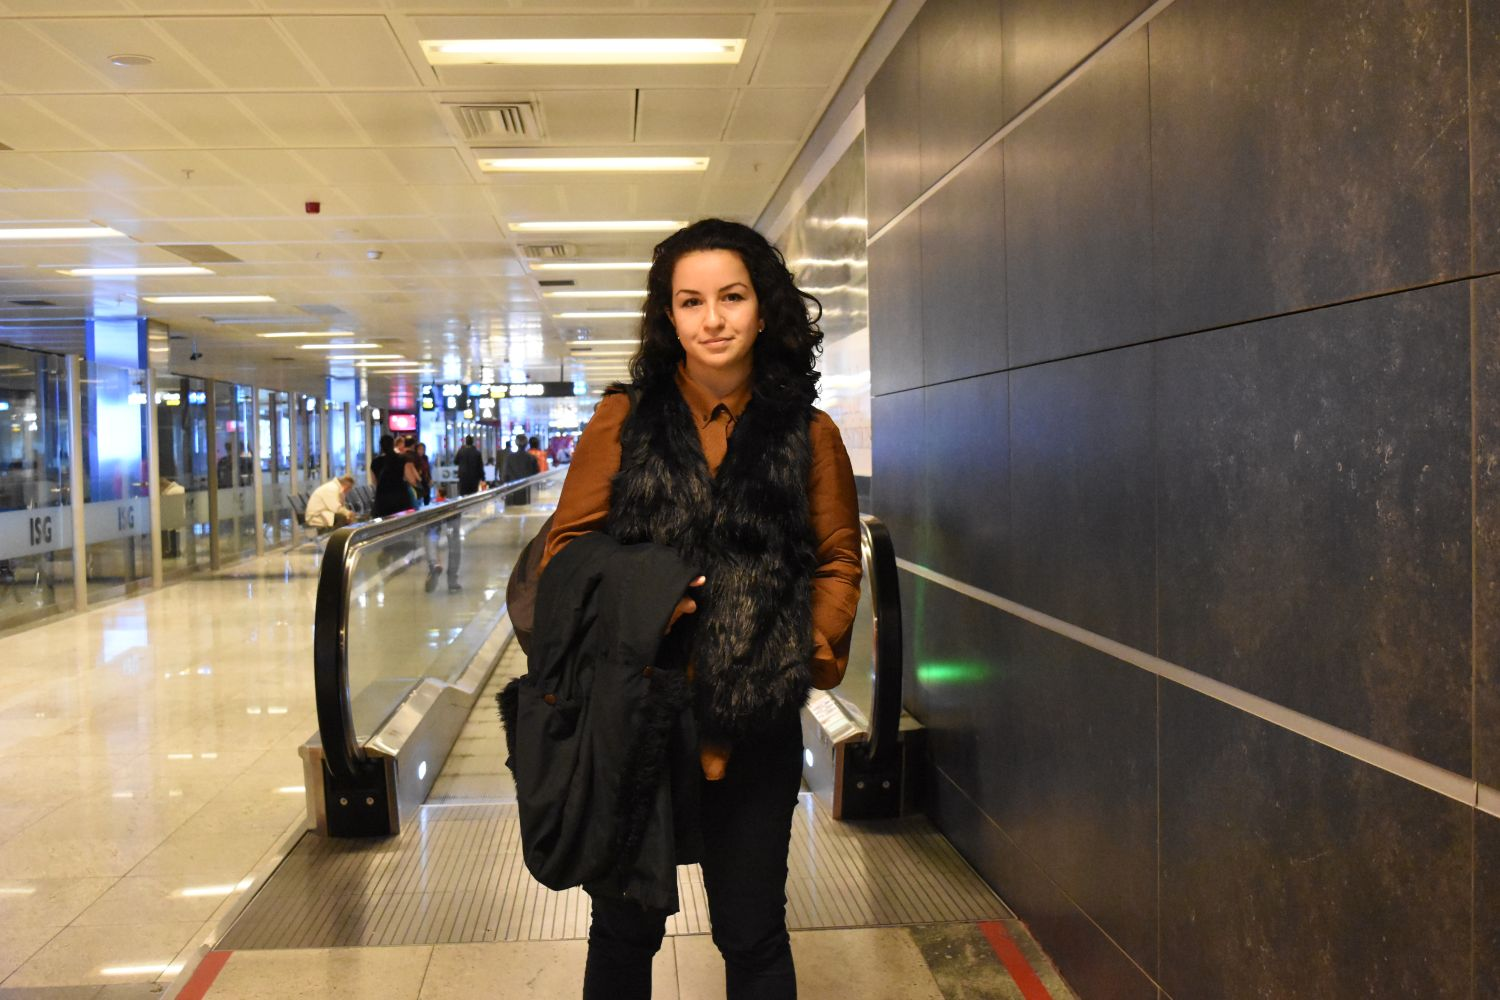 Sevgin Goktas Ozsan at Sabiha Gokcen International Airport